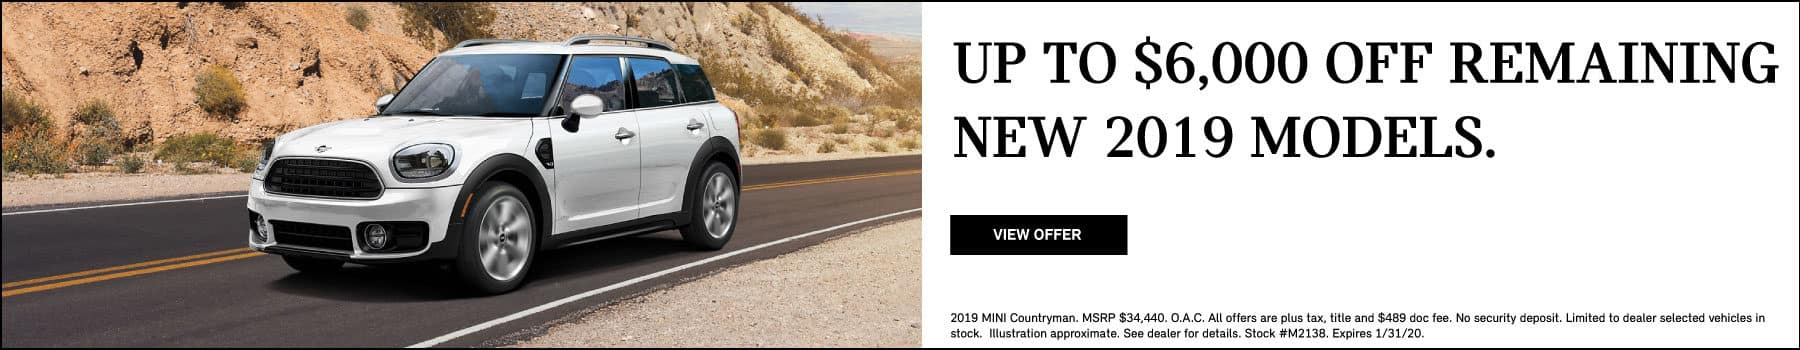 Up to $6,000 off remaining New 2019 Models.  View Offer